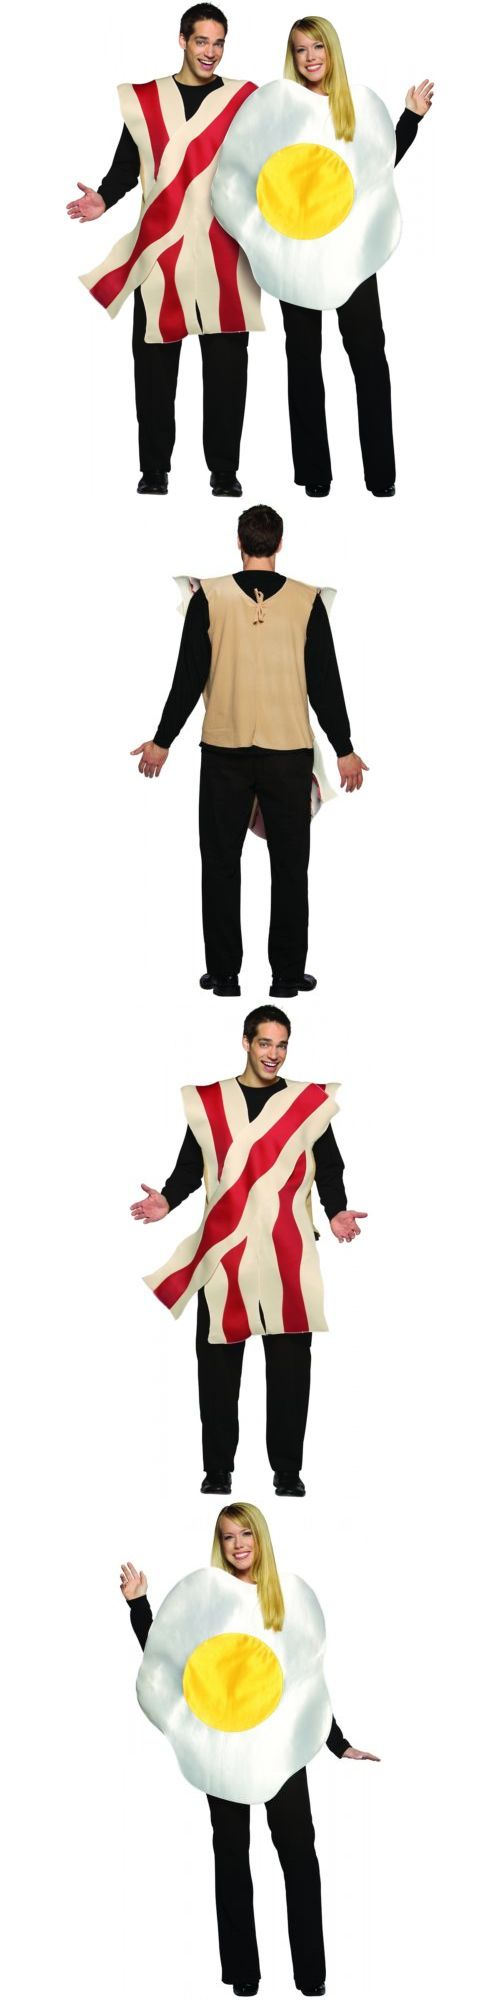 Halloween Costumes: Bacon And Egg Costumes Set Adult Funny Couples Halloween Fancy Dress -> BUY IT NOW ONLY: $35.49 on eBay!